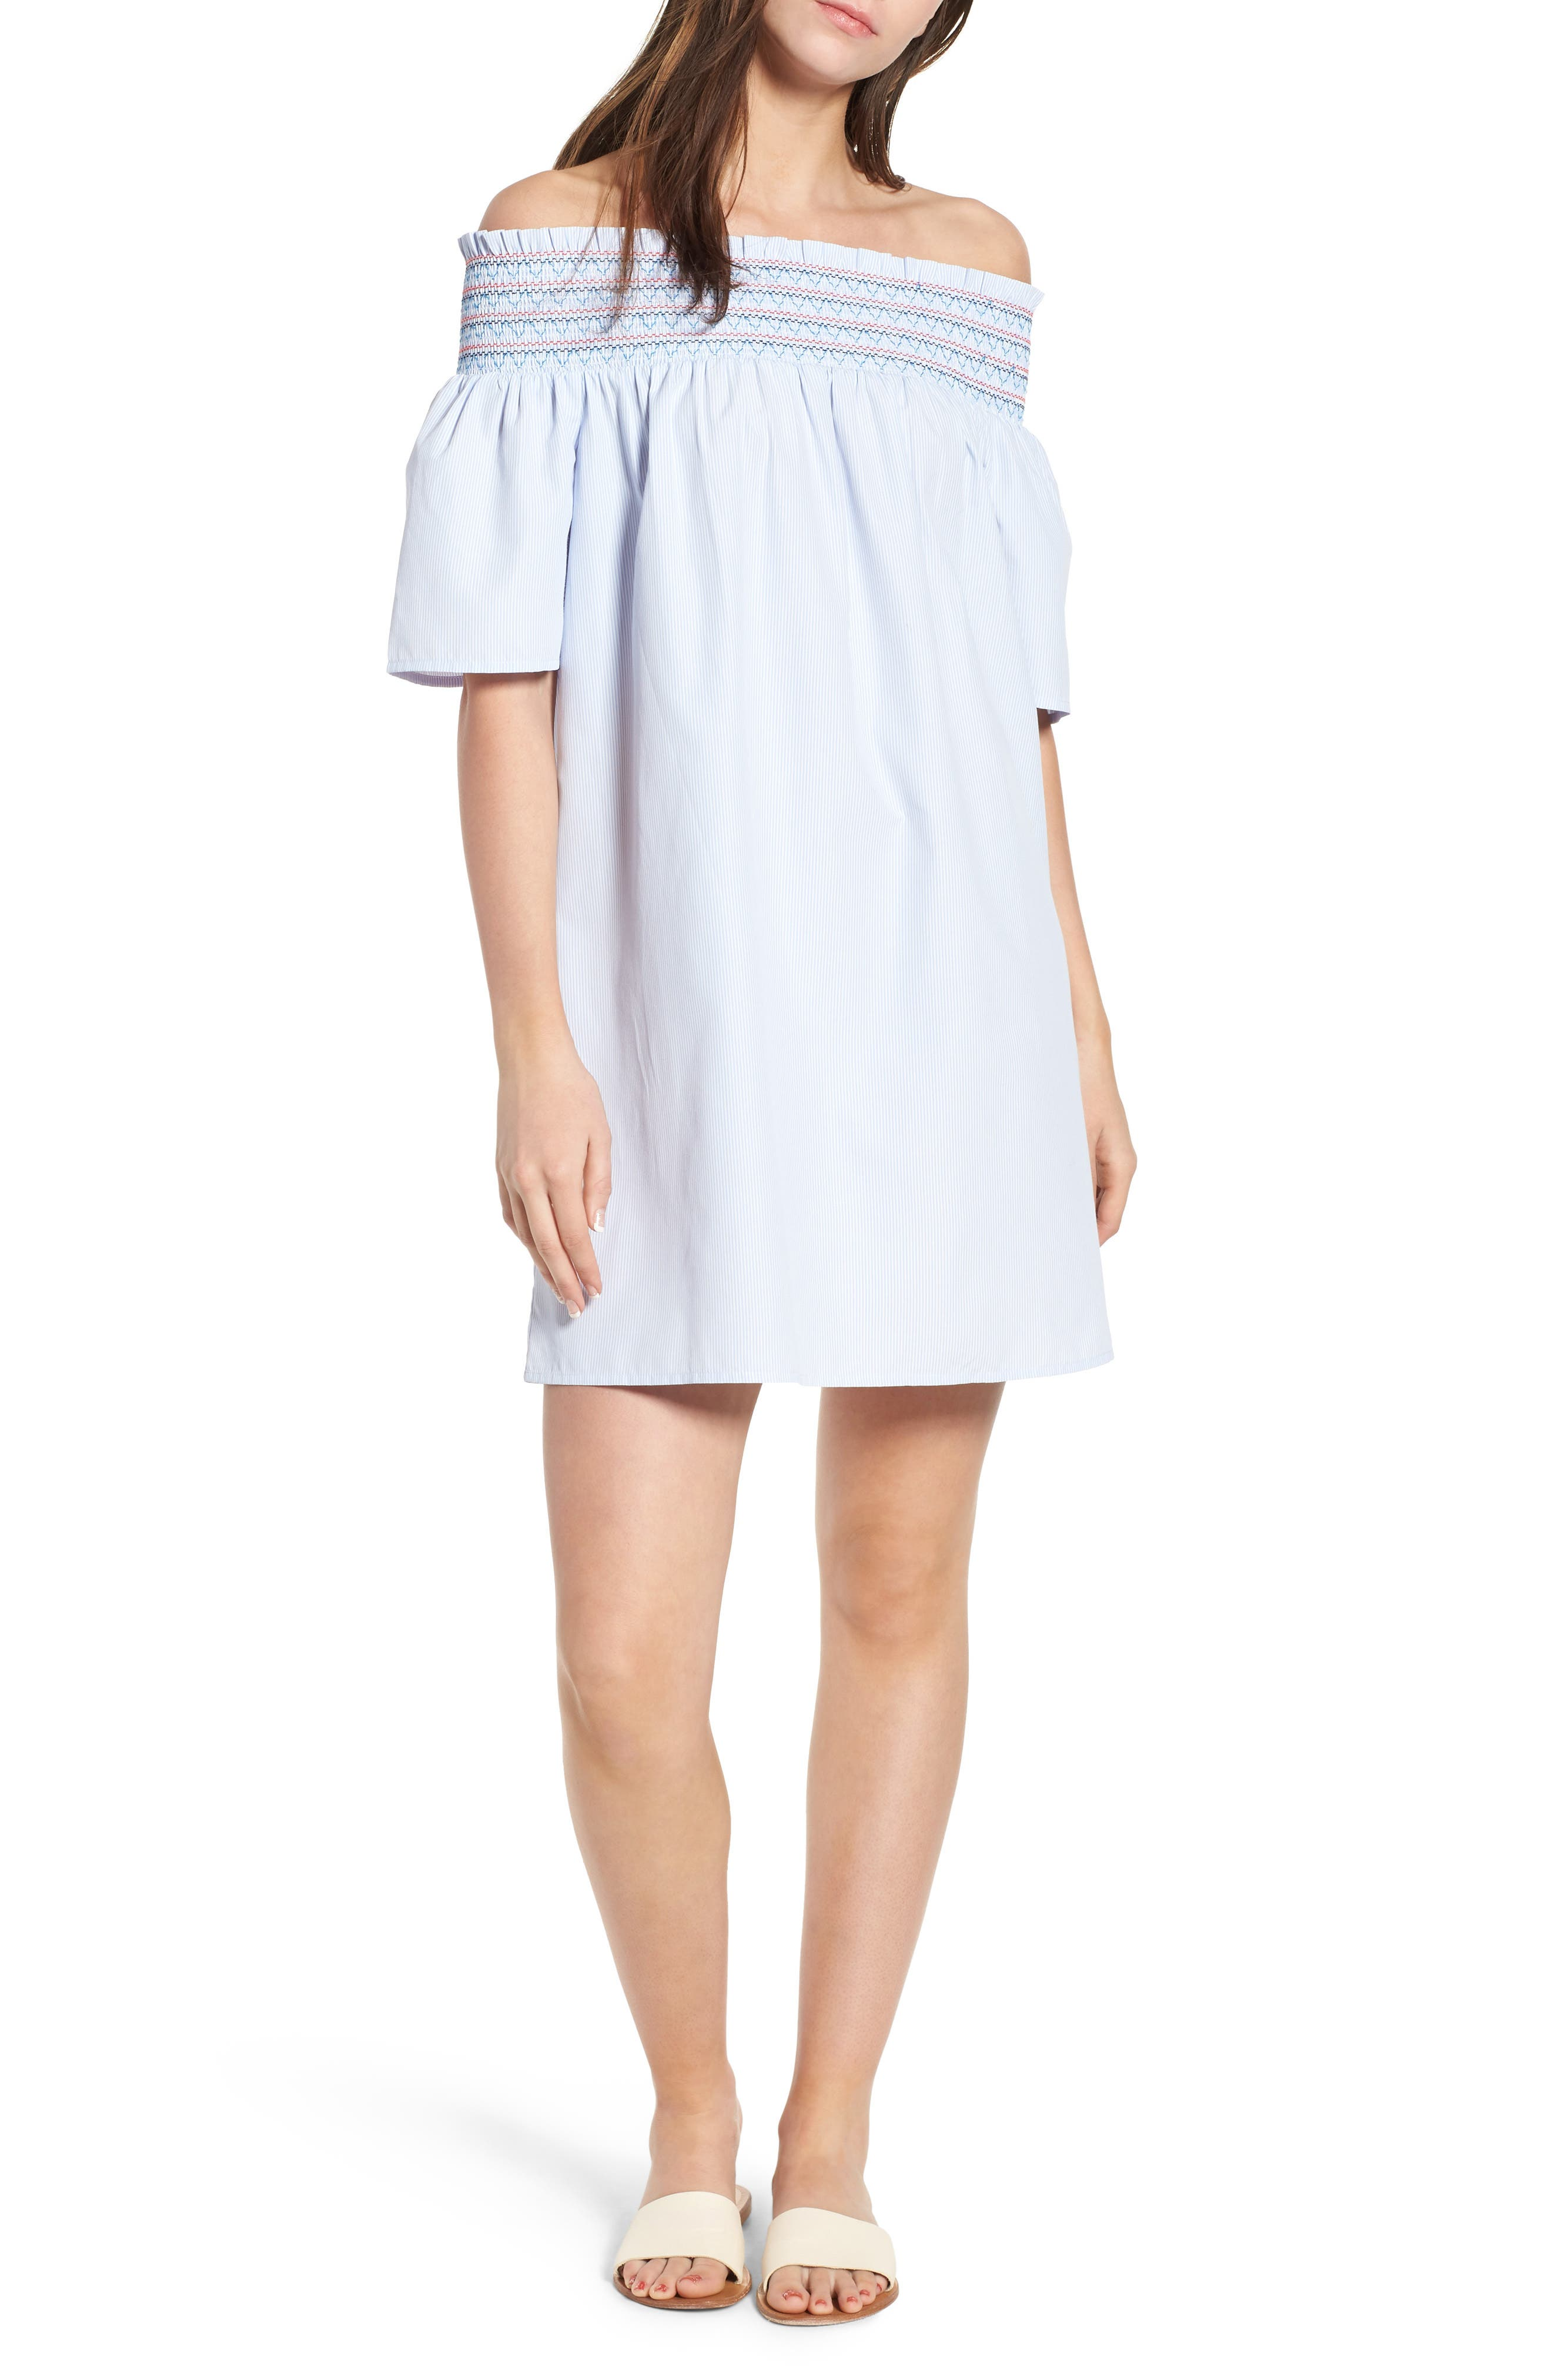 Smocked Off the Shoulder Dress,                         Main,                         color, Bright White / Serenity